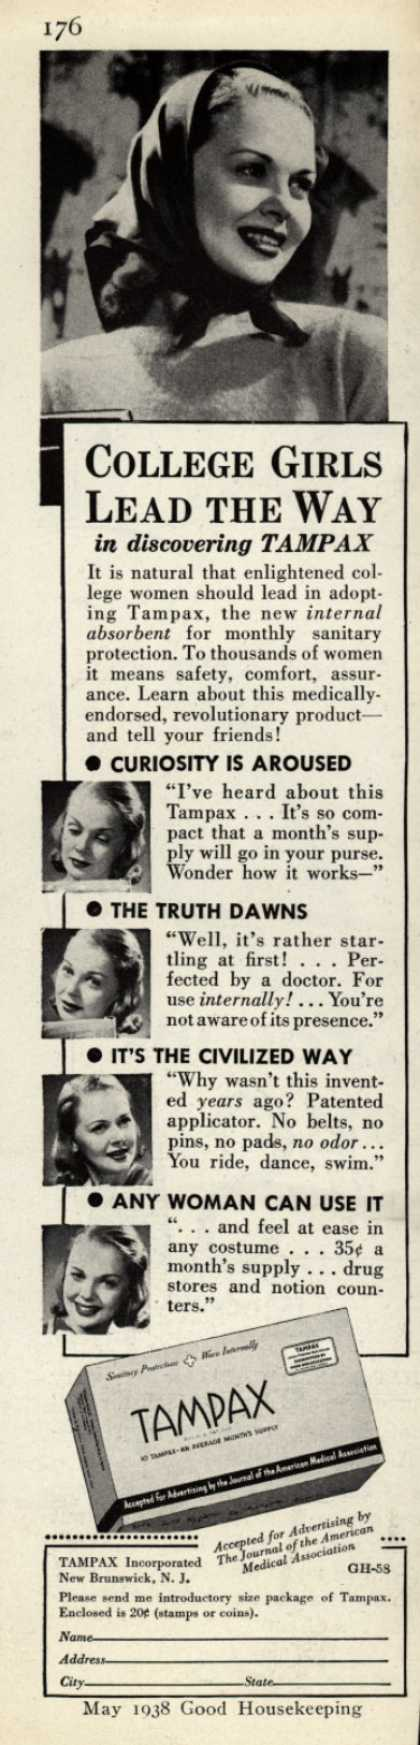 Tampax's Tampons – College Girls Lead the Way (1938)